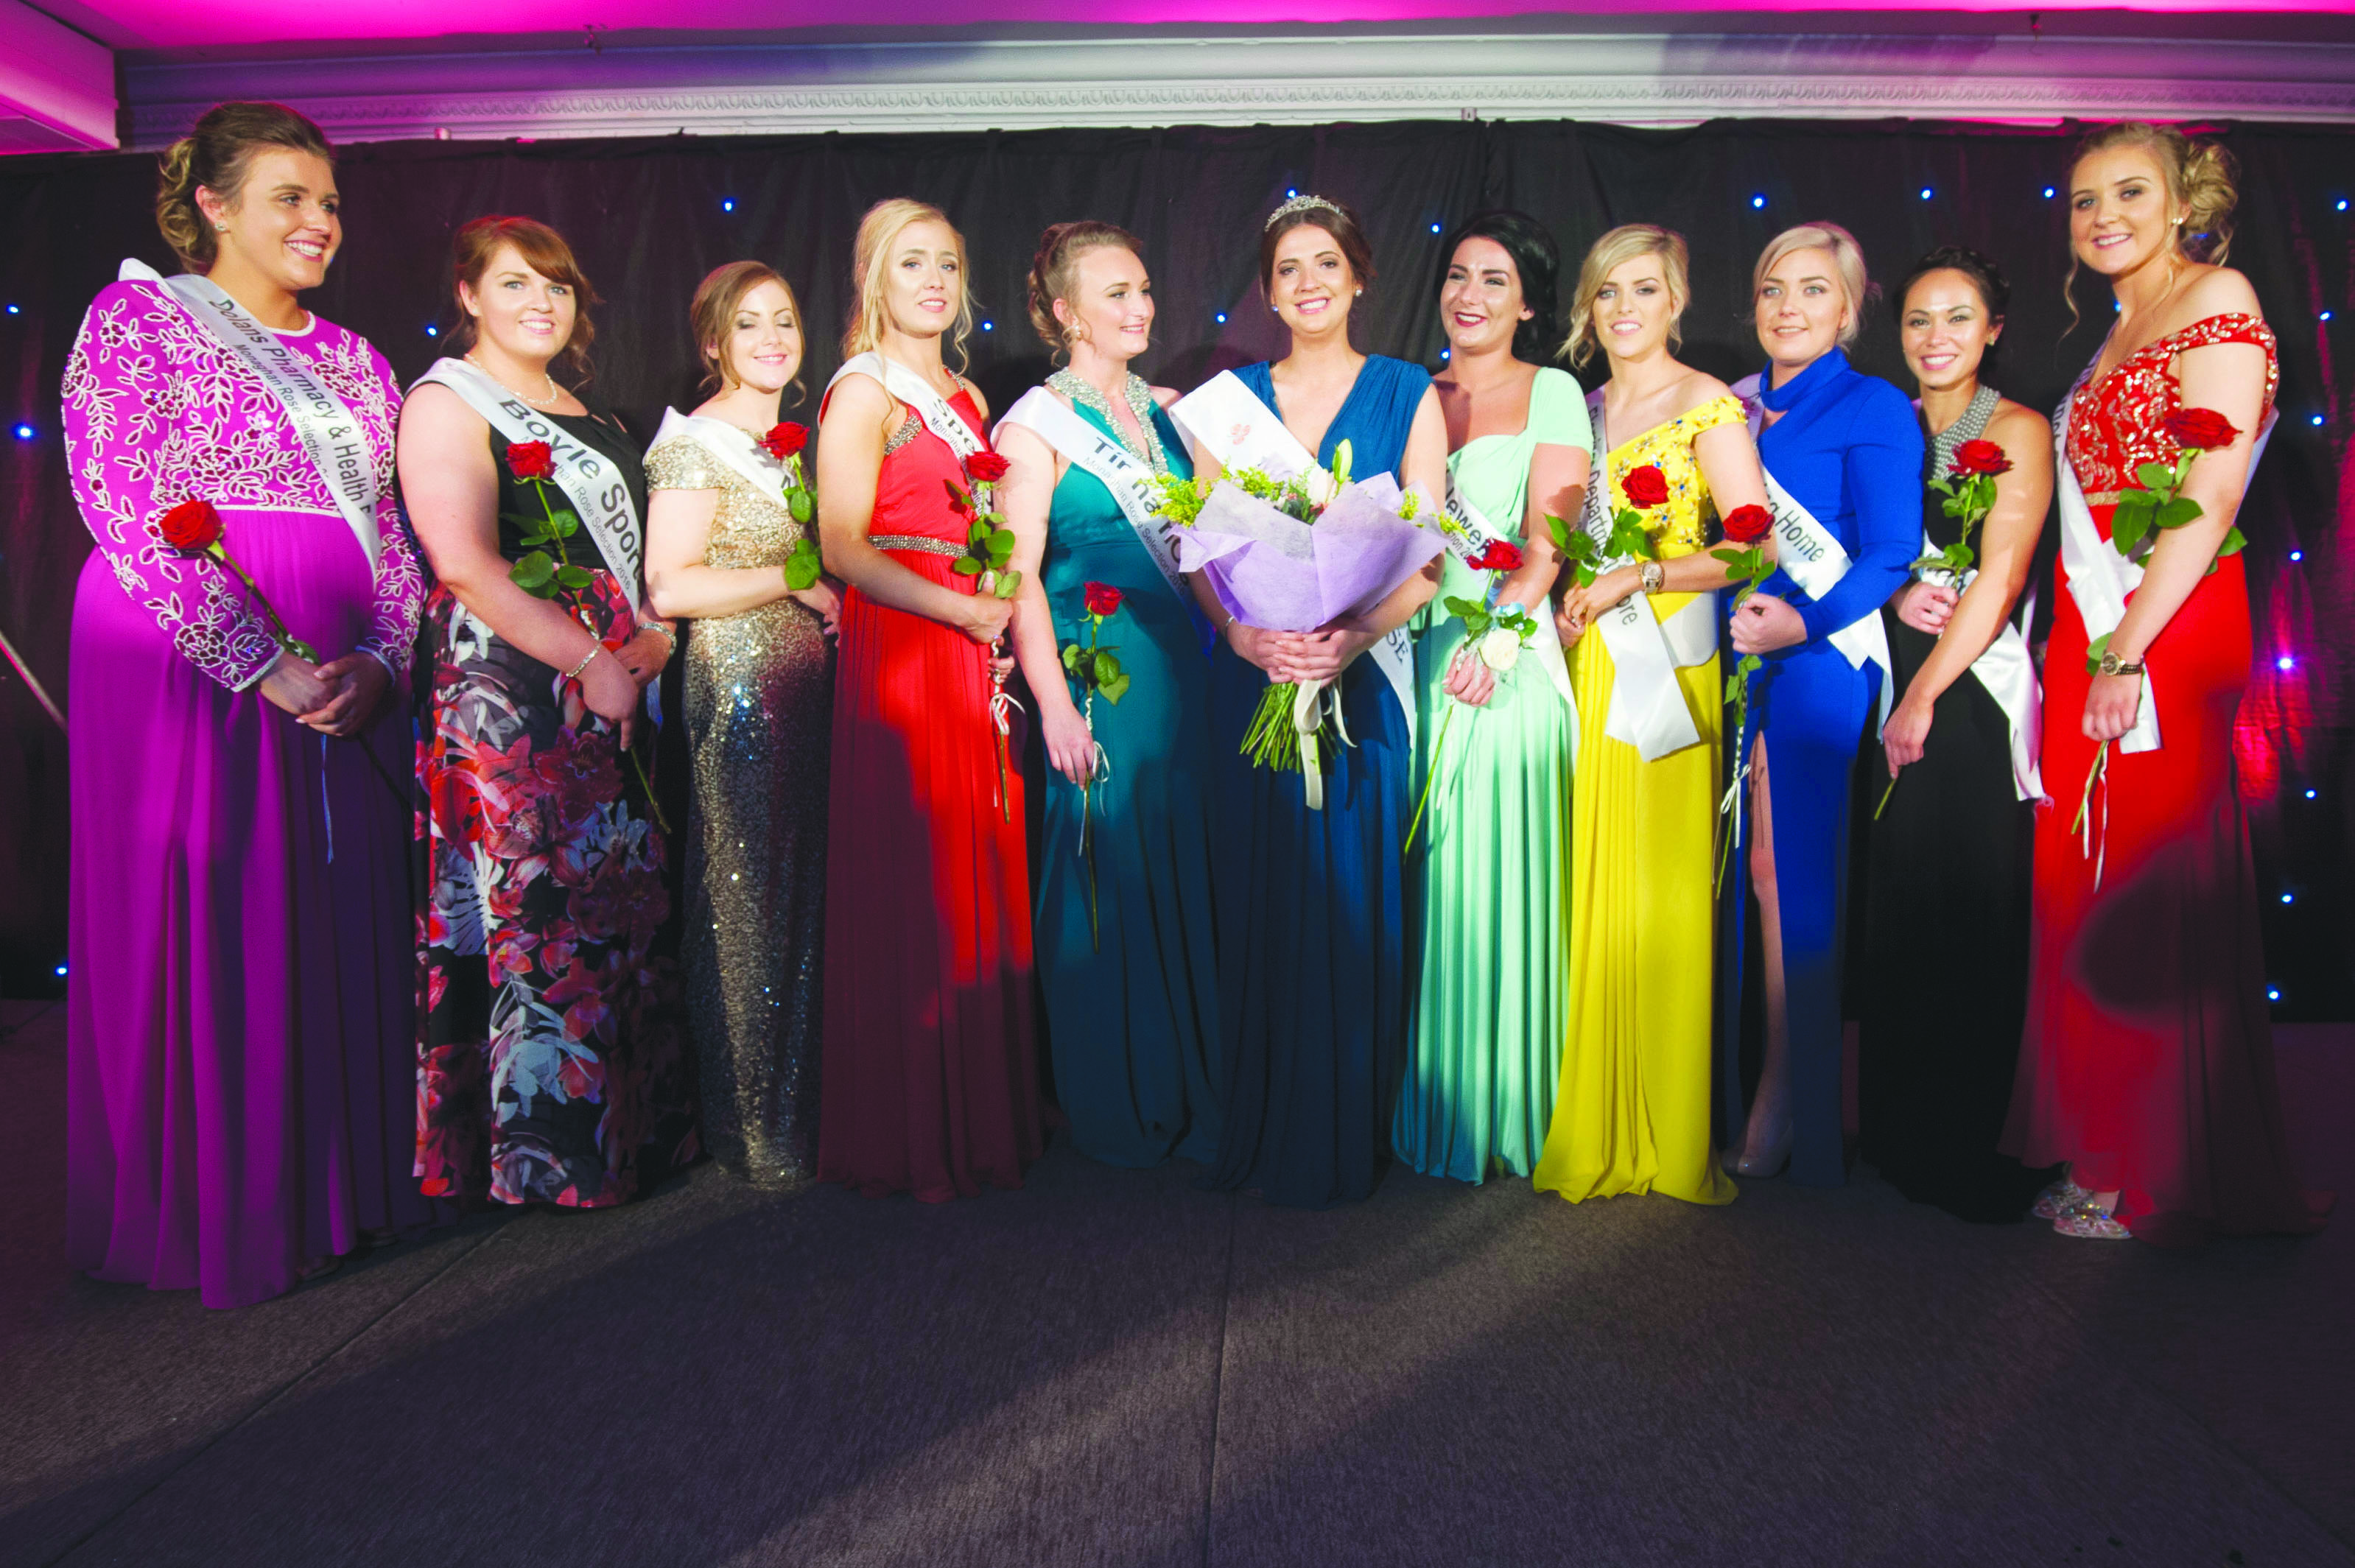 Pamela Allen, centre, 2016 Monaghan Rose, with the other girls that took part in the selection. Included are (L-R) Grainne O'Connor, Cáit Beggan, Alexandra Lowry, Nicole O'Reilly, Elaine McKernan, Pamela Allen, Rebecca Duffy, Shauna Bell, Naomi Hutchinson, Eimear Galligan and Sinead McCarey. ©Rory Geary/The Northern Standard